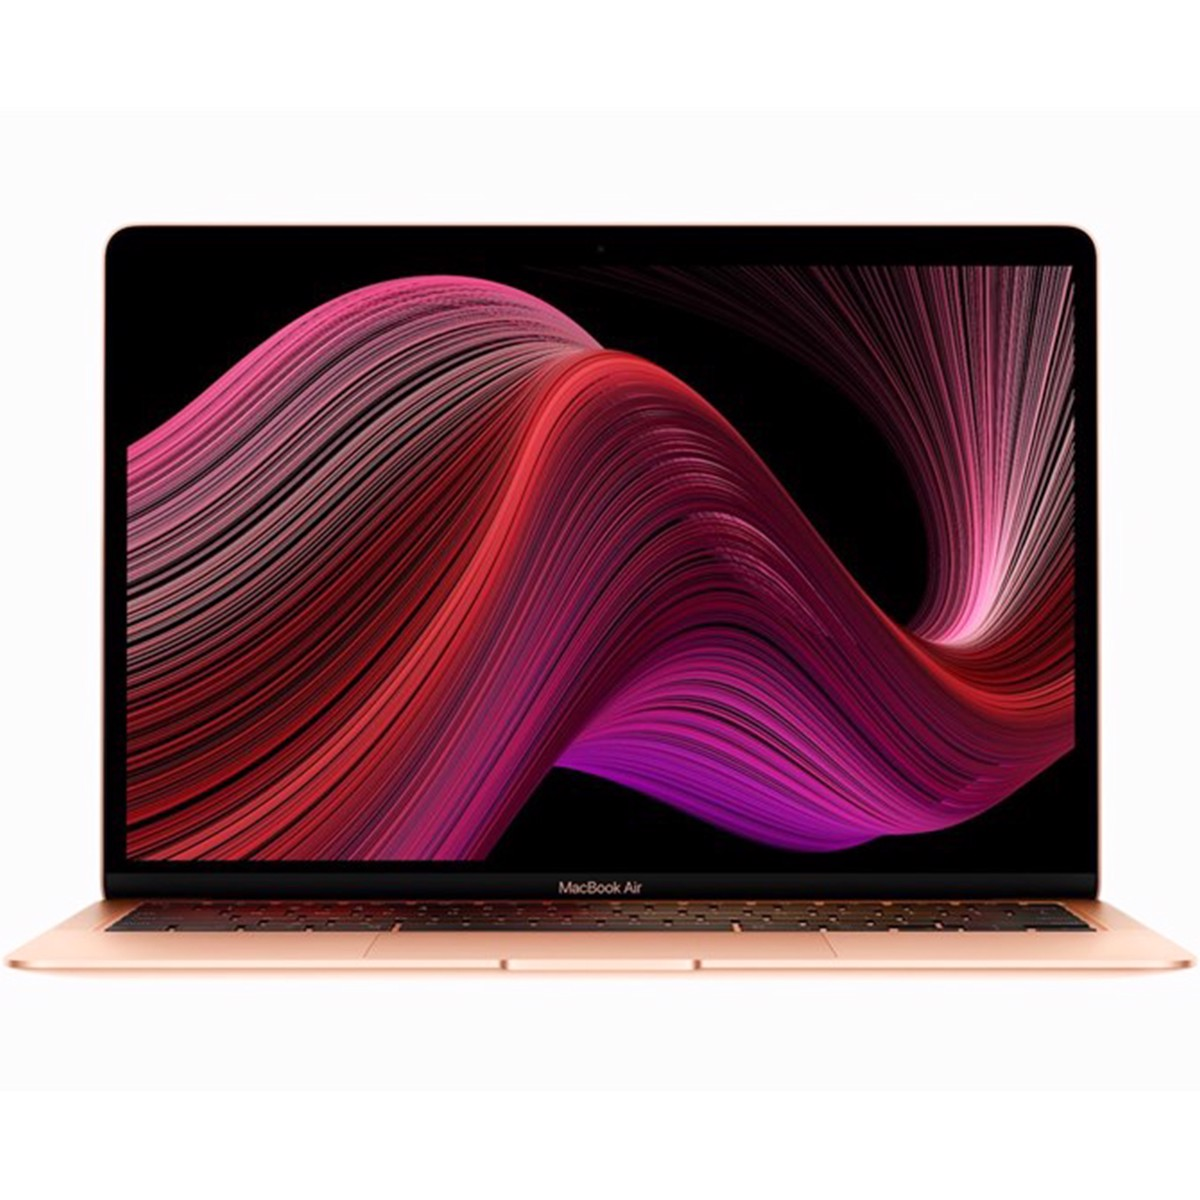 Macbook Air (13.3 Inch, 2020) - Core i5 / RAM 8GB / SSD 512GB